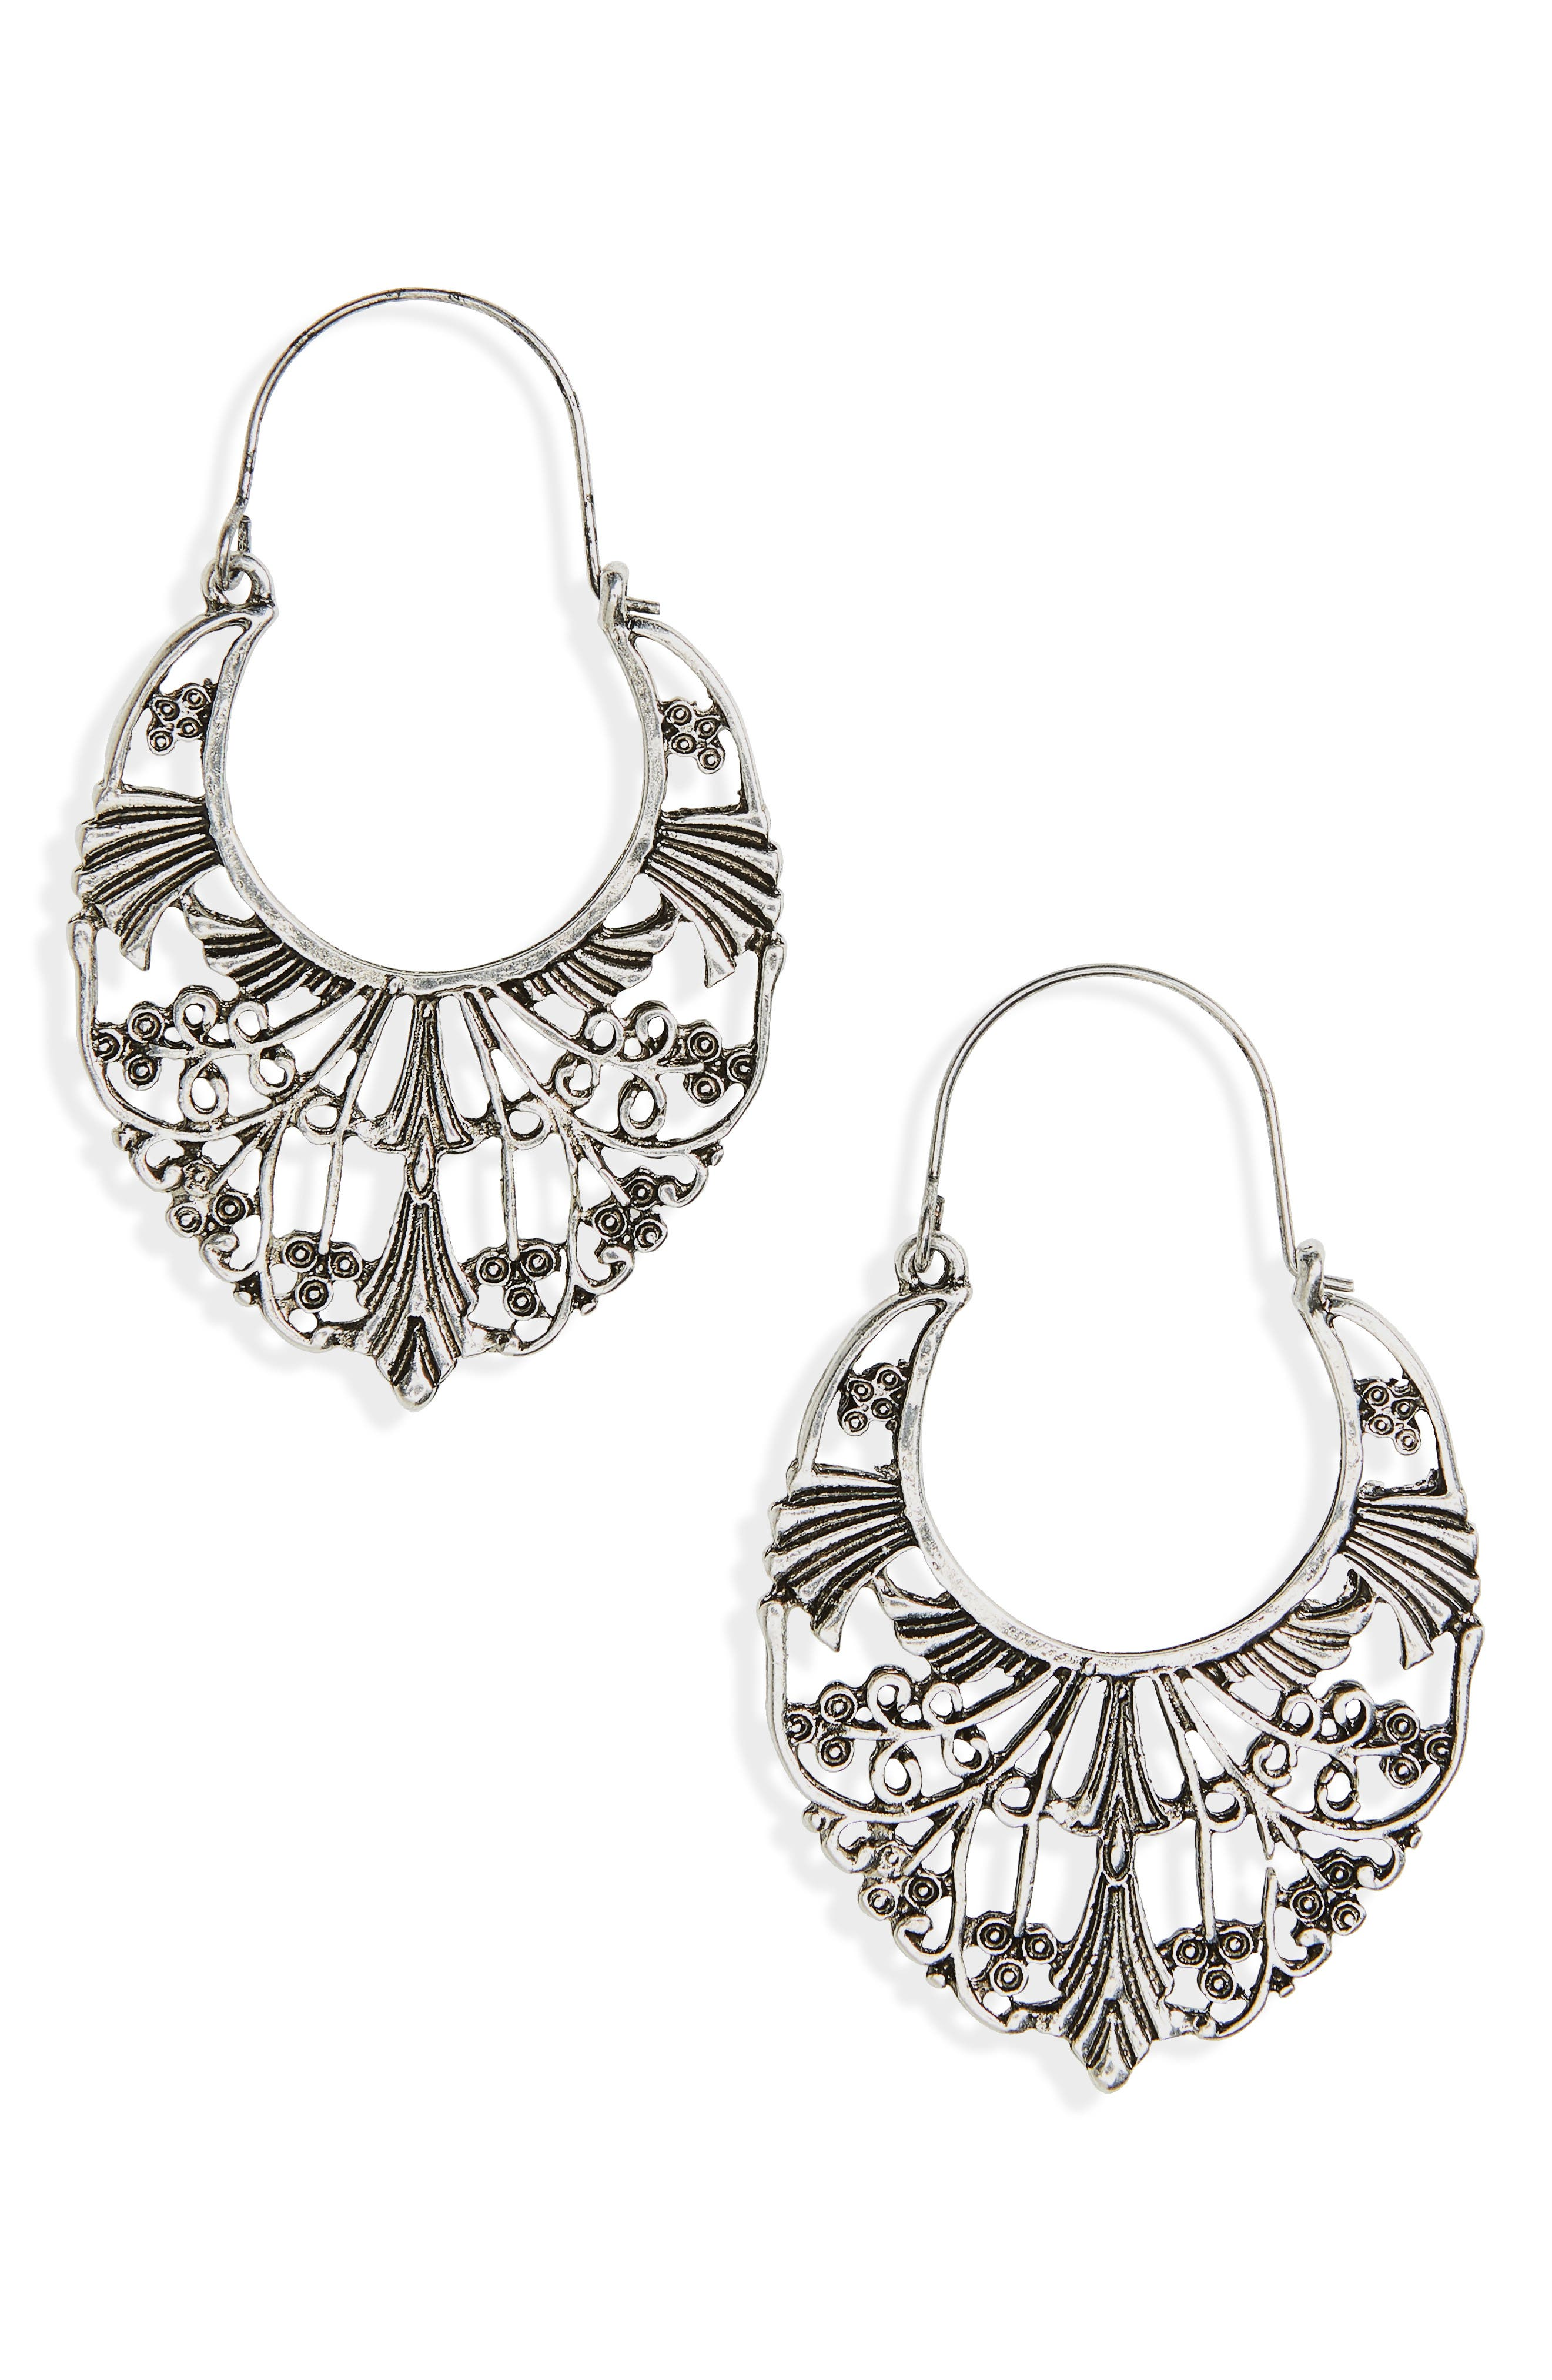 Ornate Statement Earrings,                             Main thumbnail 1, color,                             Silver